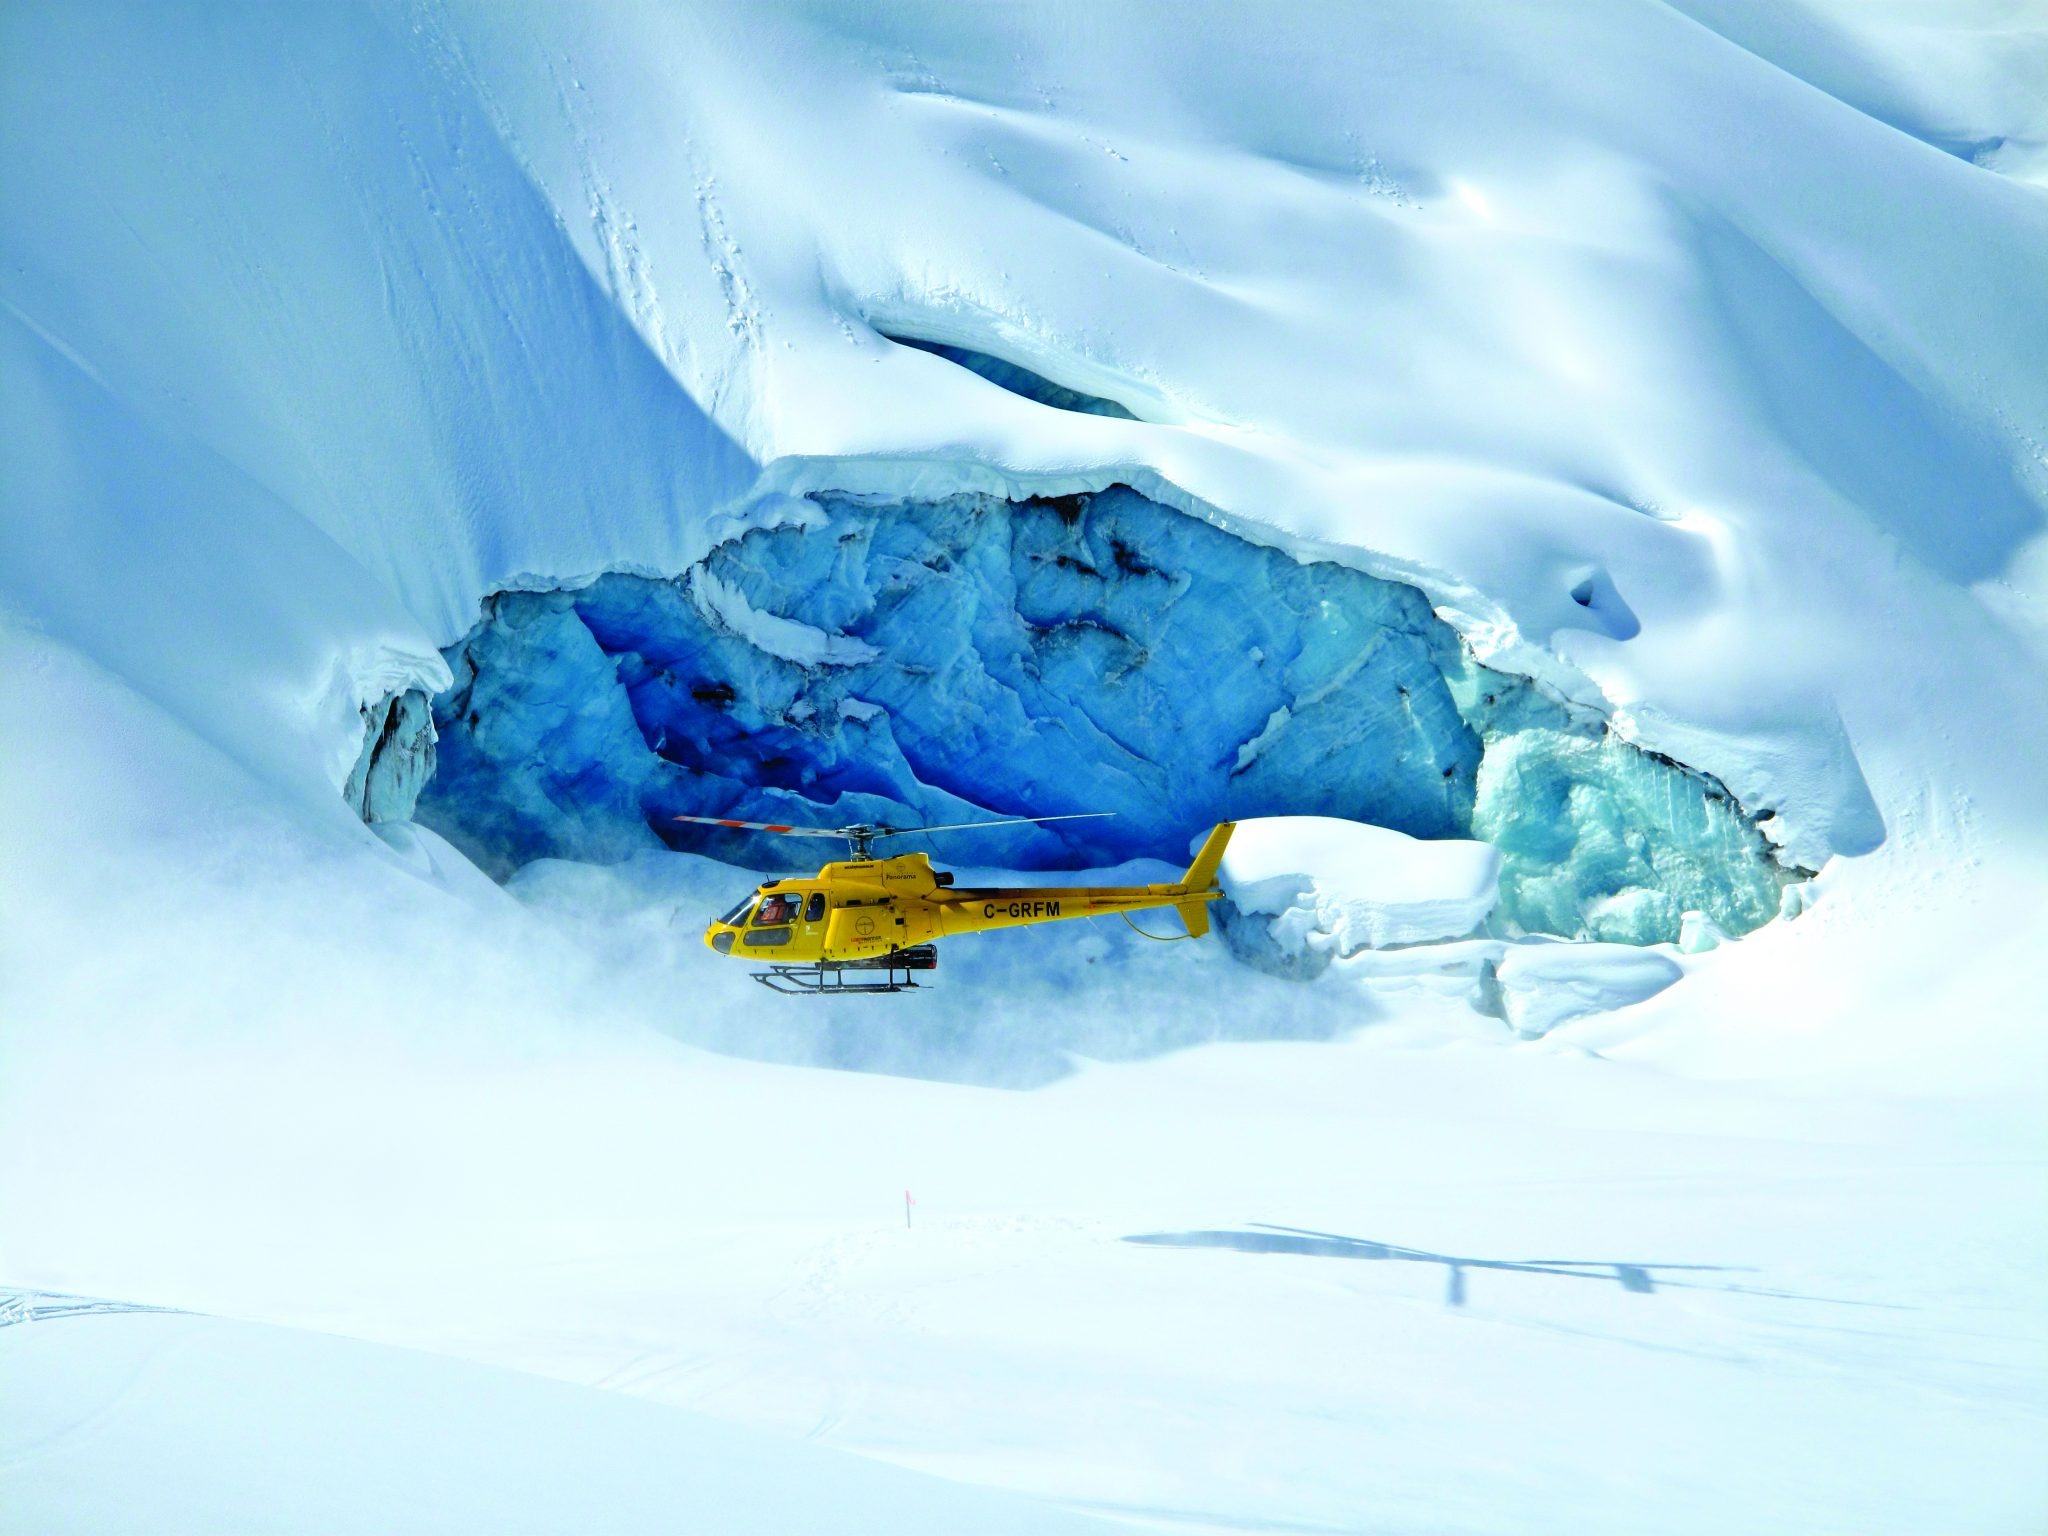 The cold truth about heliskiing…it's addictive